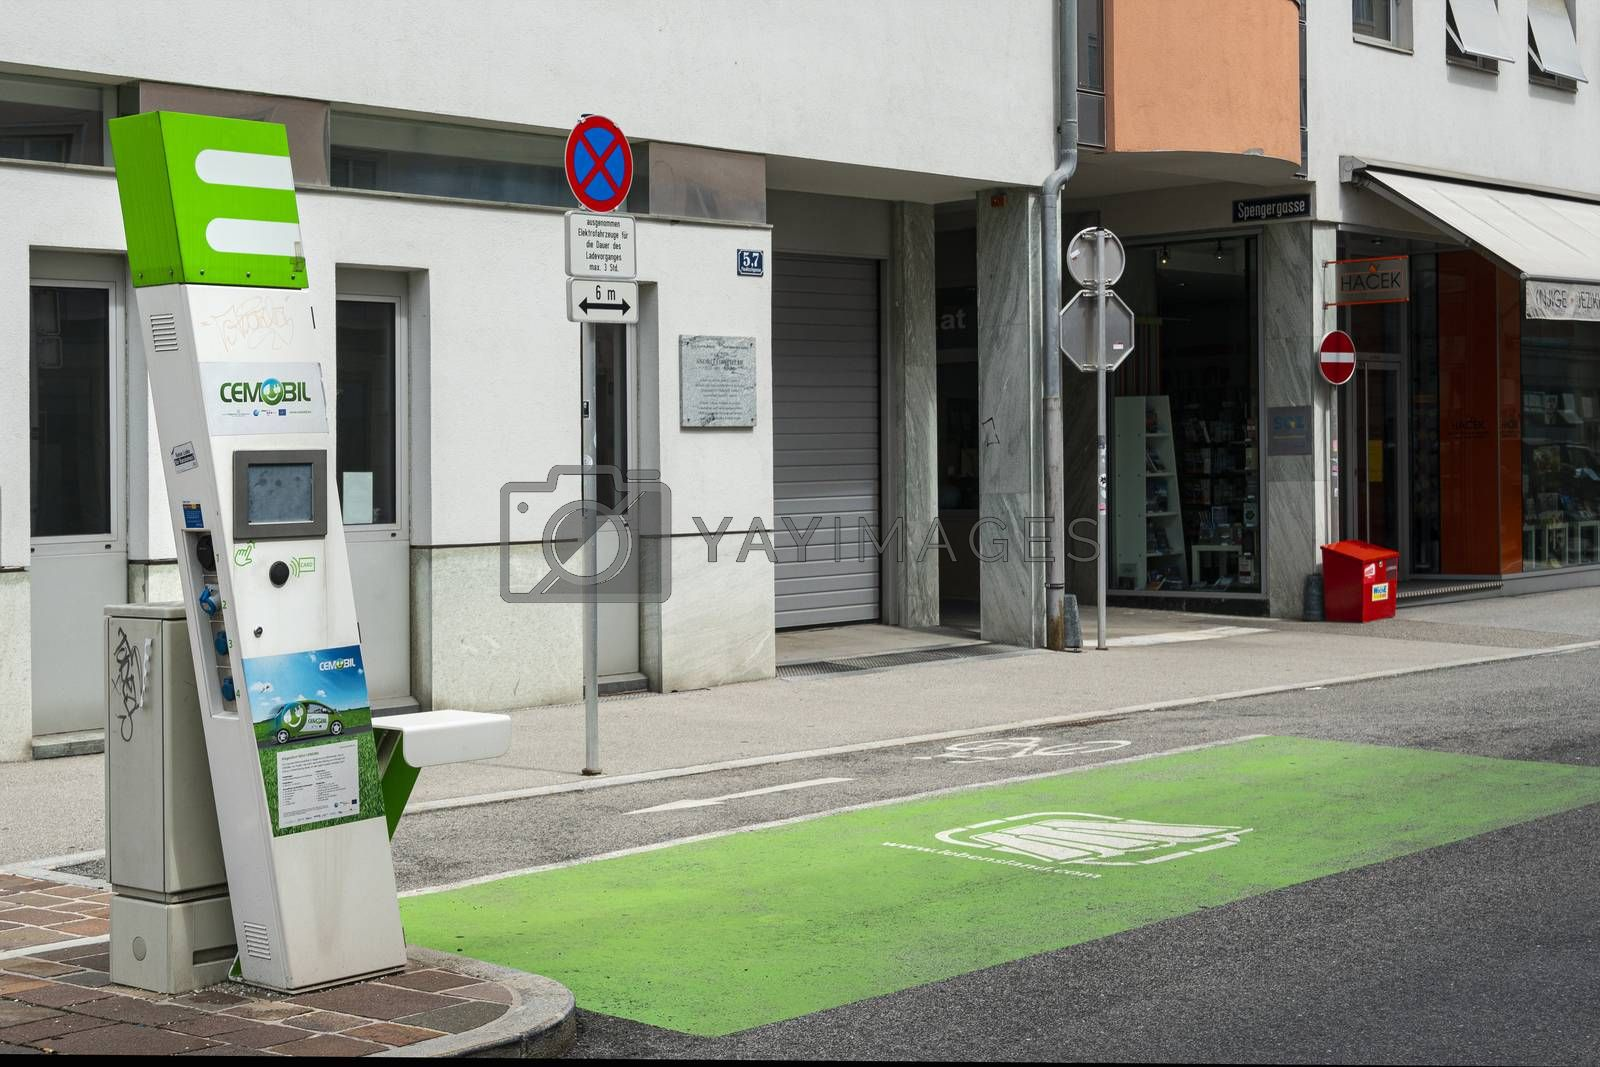 Klagenfurt, Austria. August 16, 2020. An electric vehicle charging station in a street in the city center.